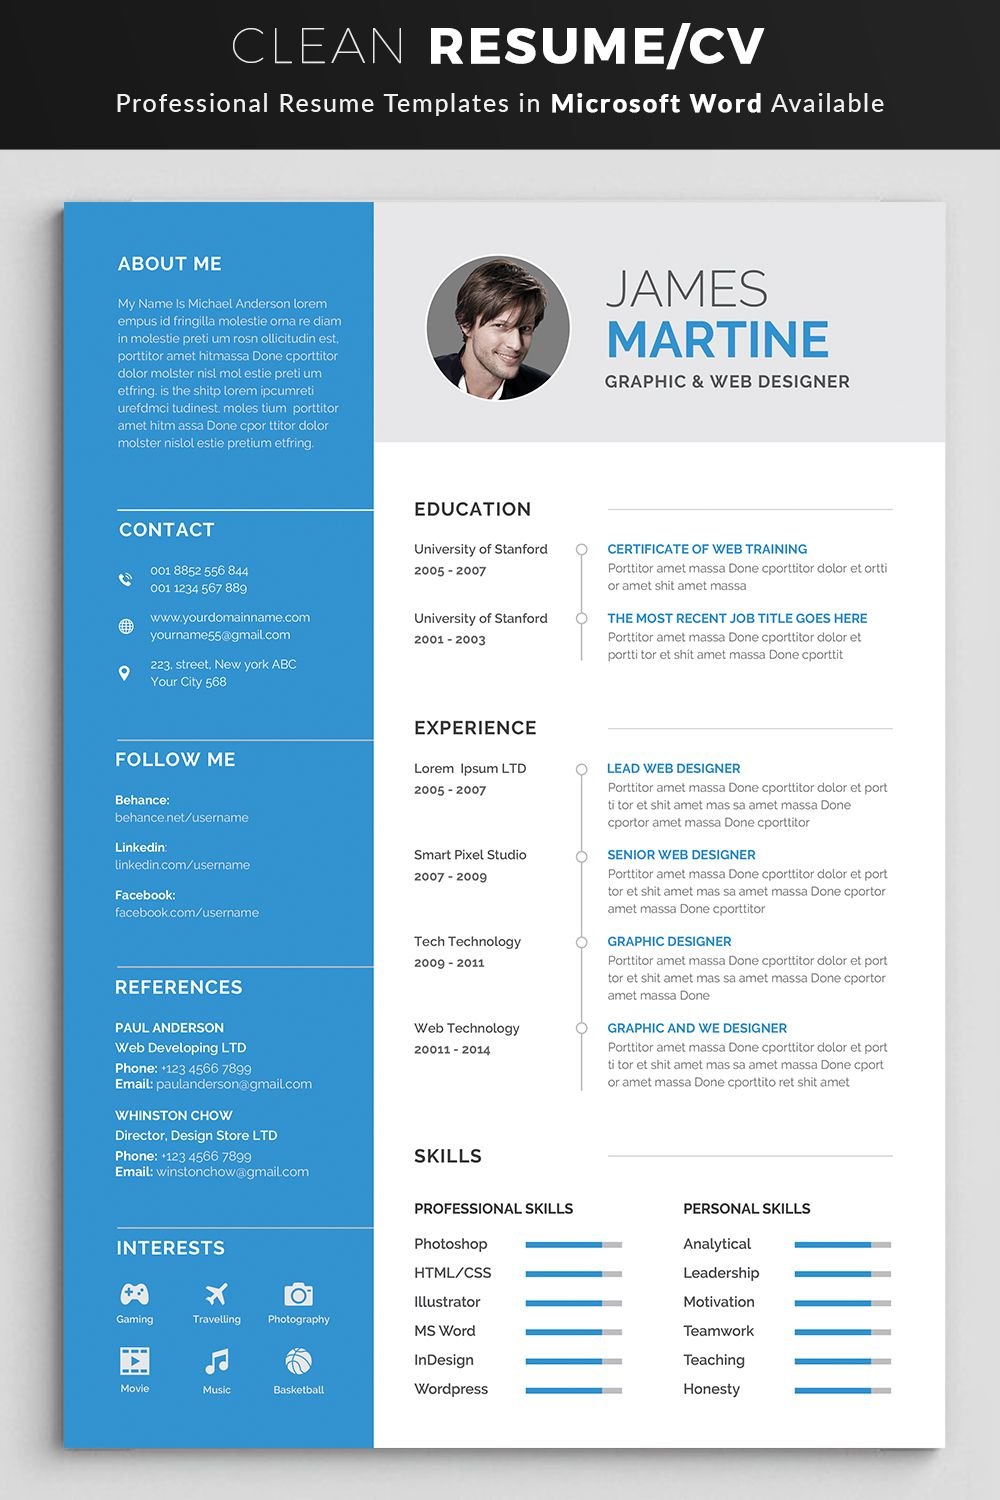 Resume Resume template professional, Resume template